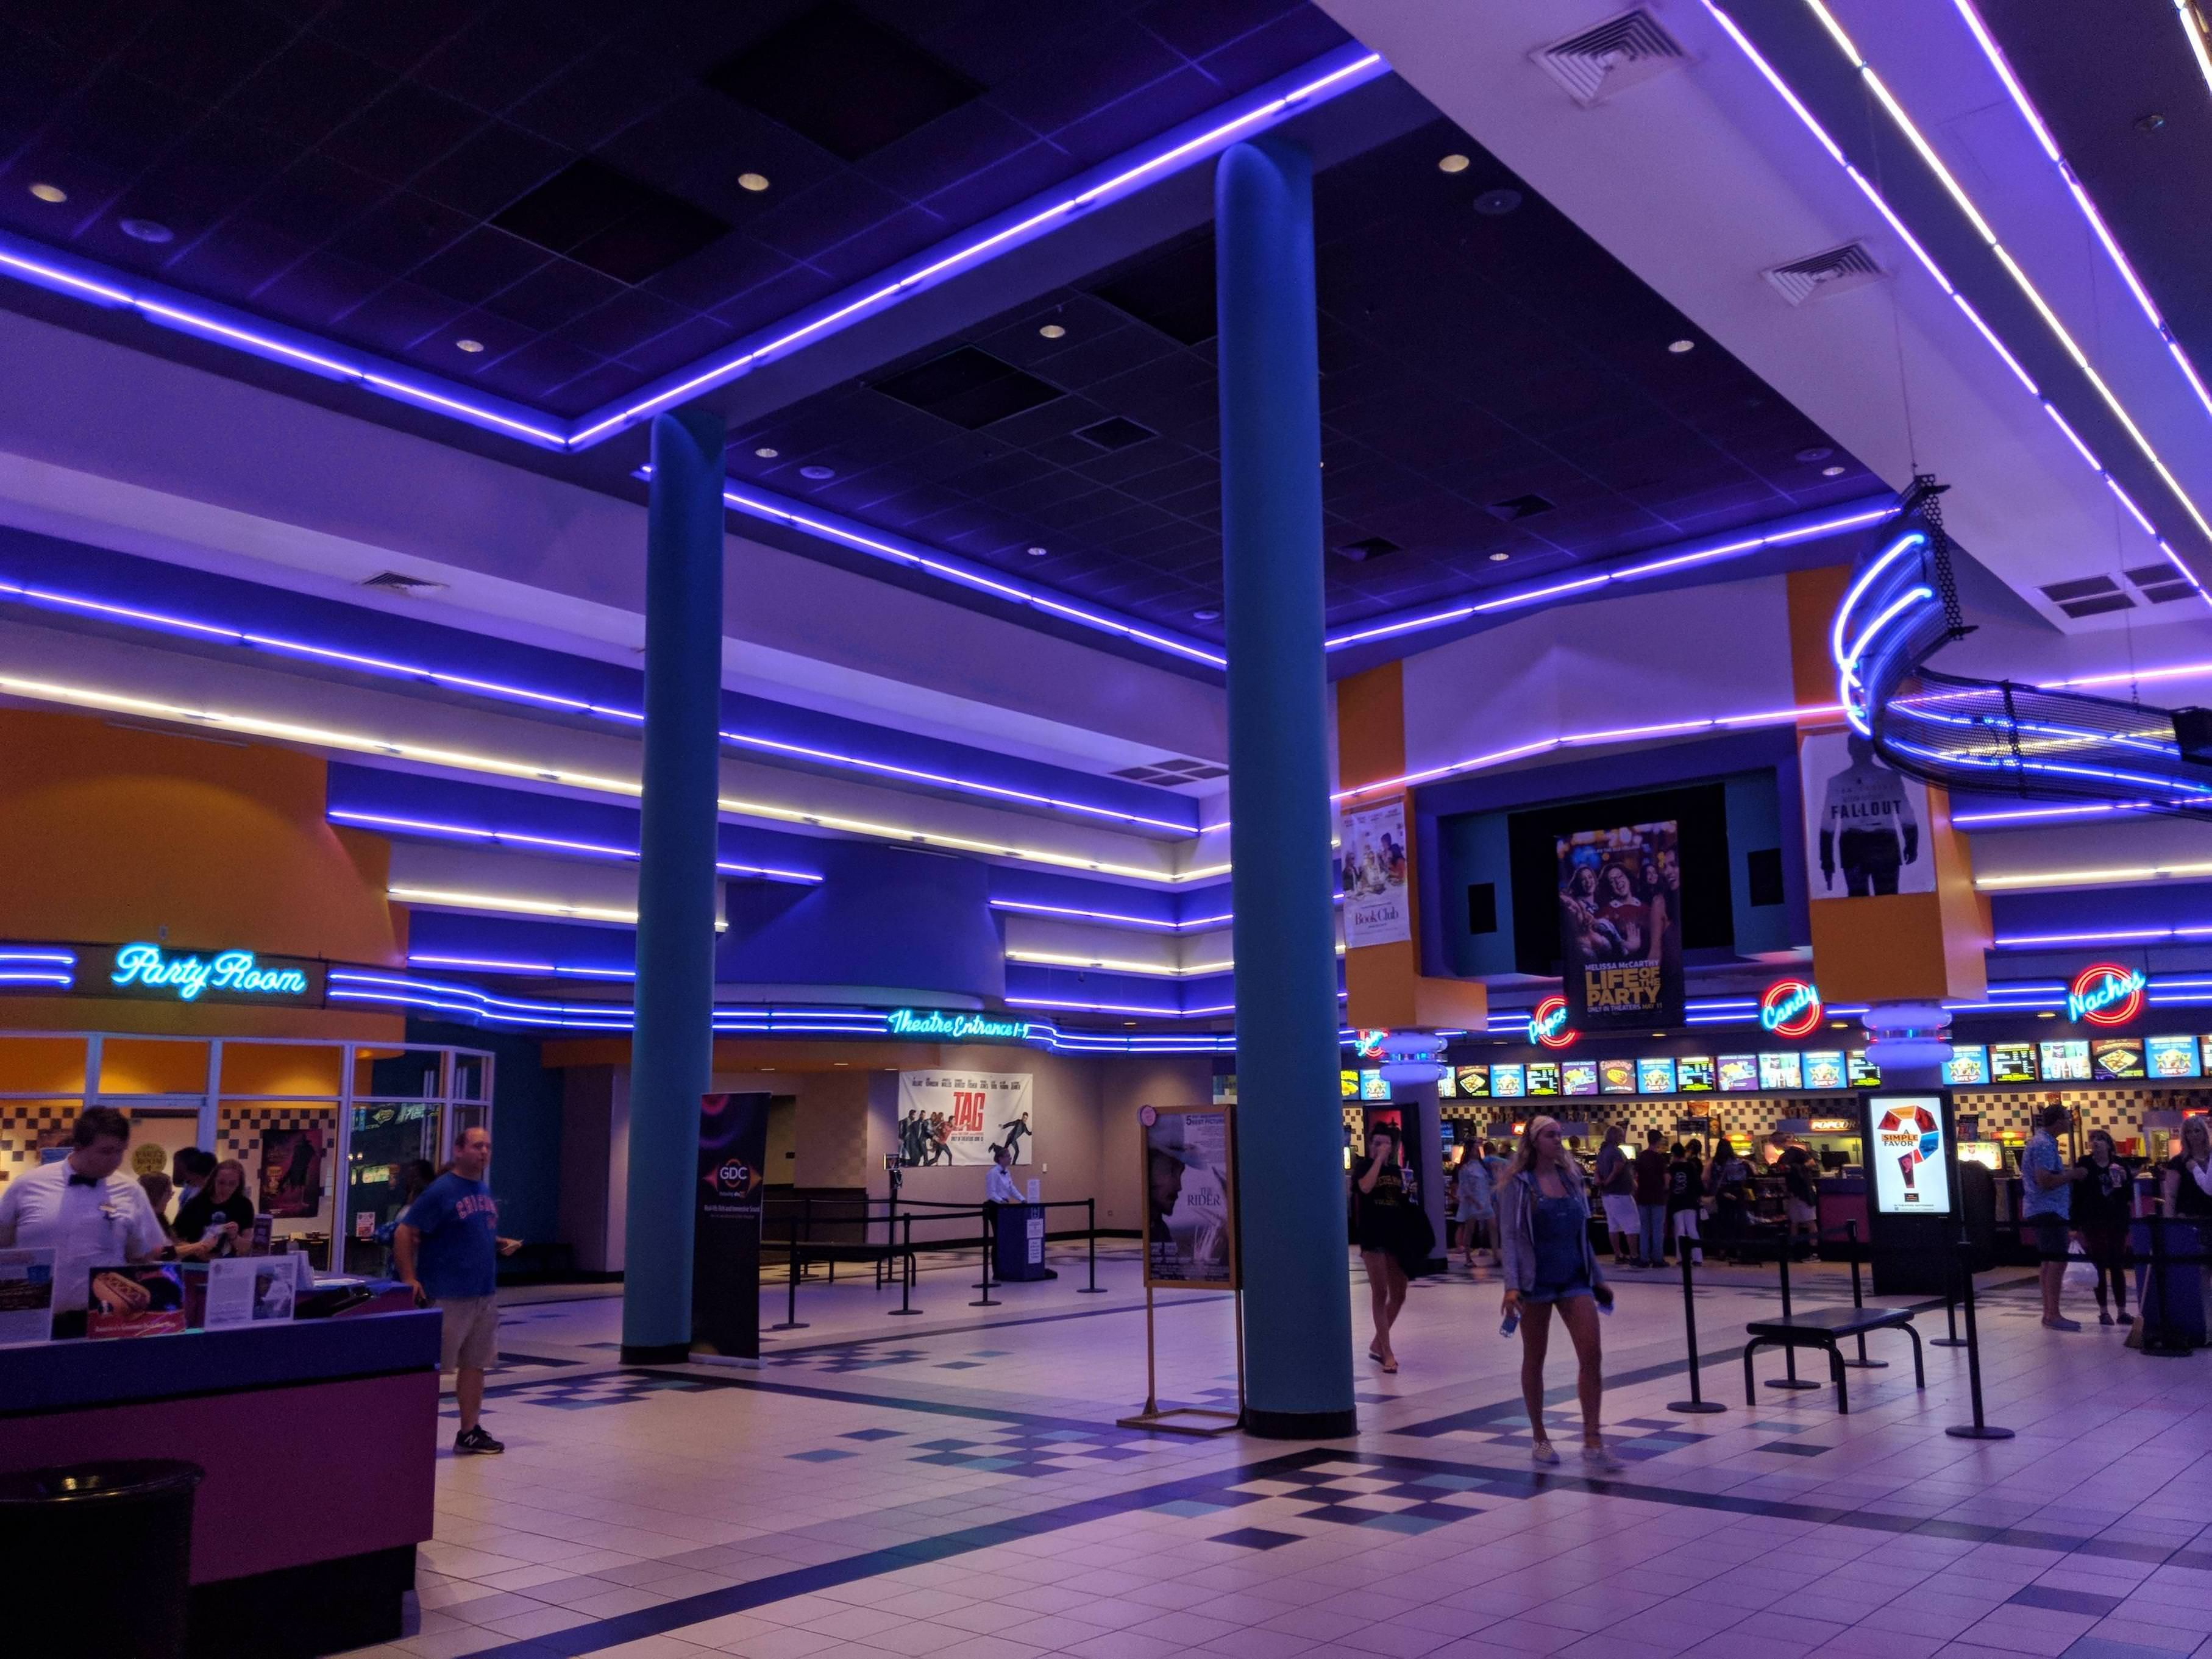 It just occurred to me that this movie theatre im at